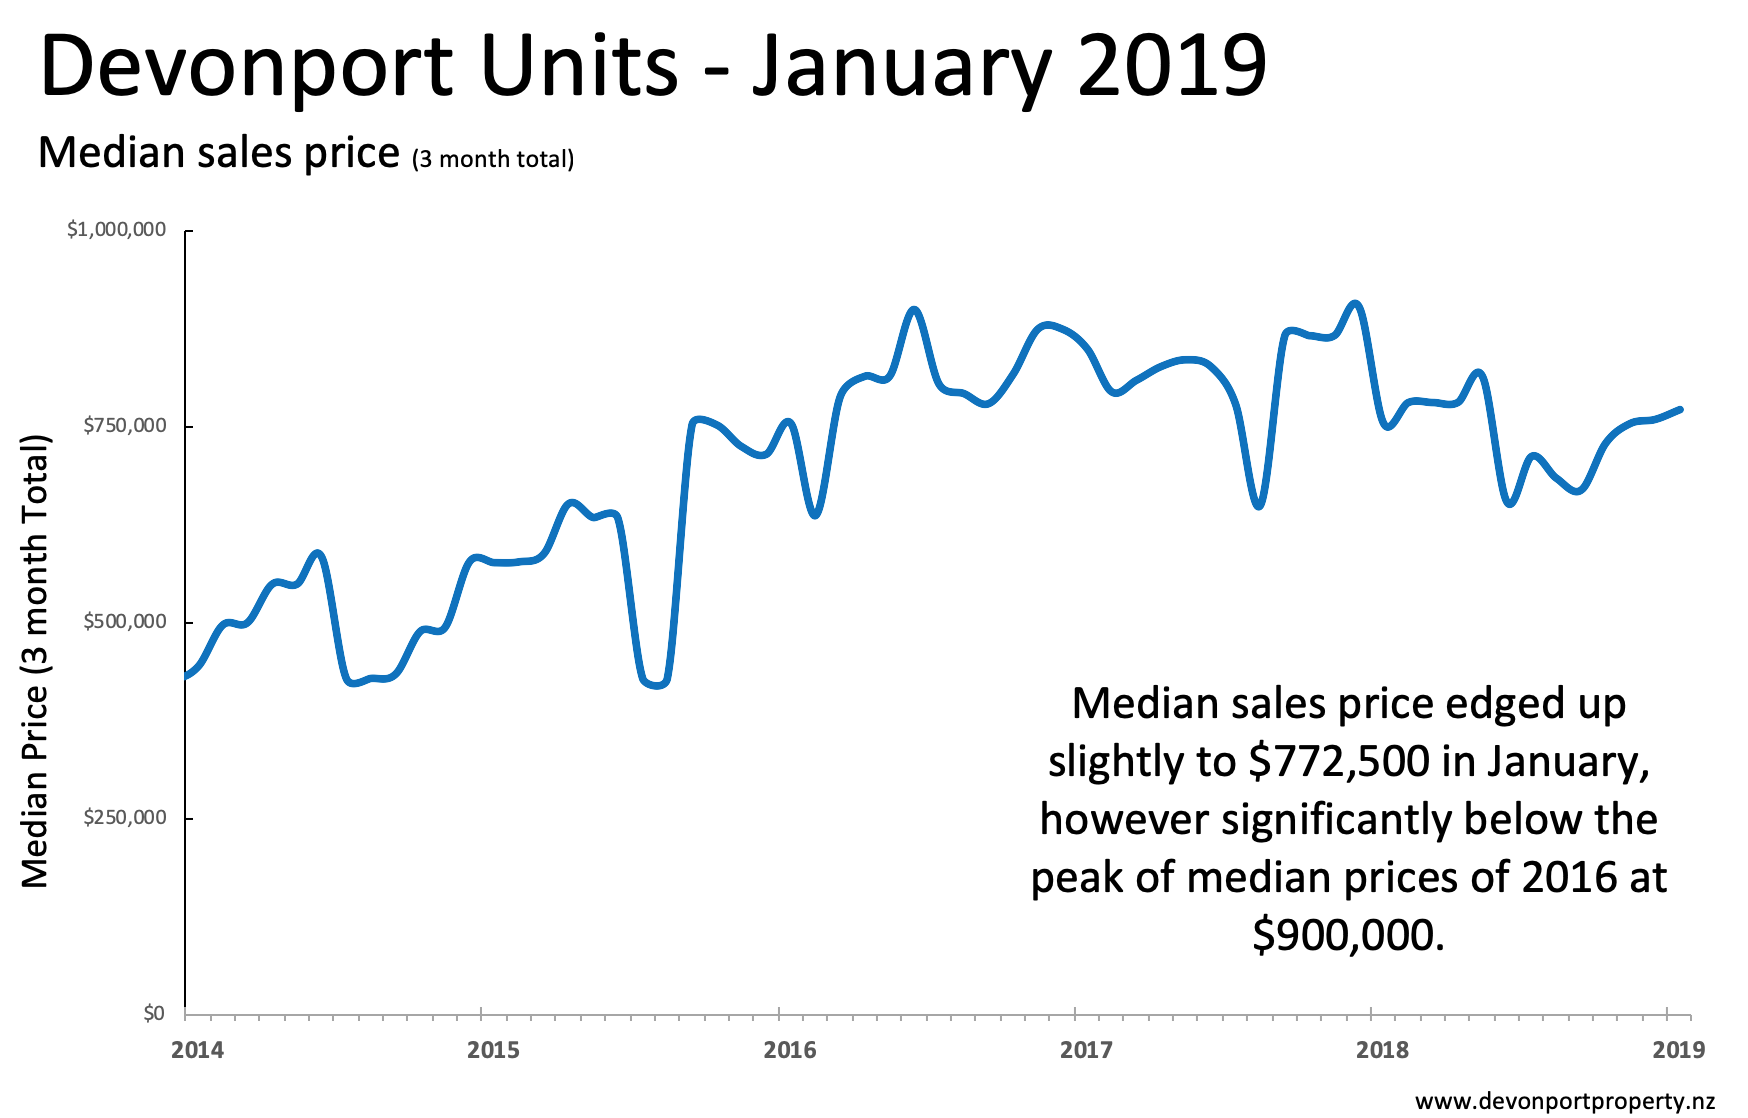 Devonport median units prices 3MMT Jan 2019.png